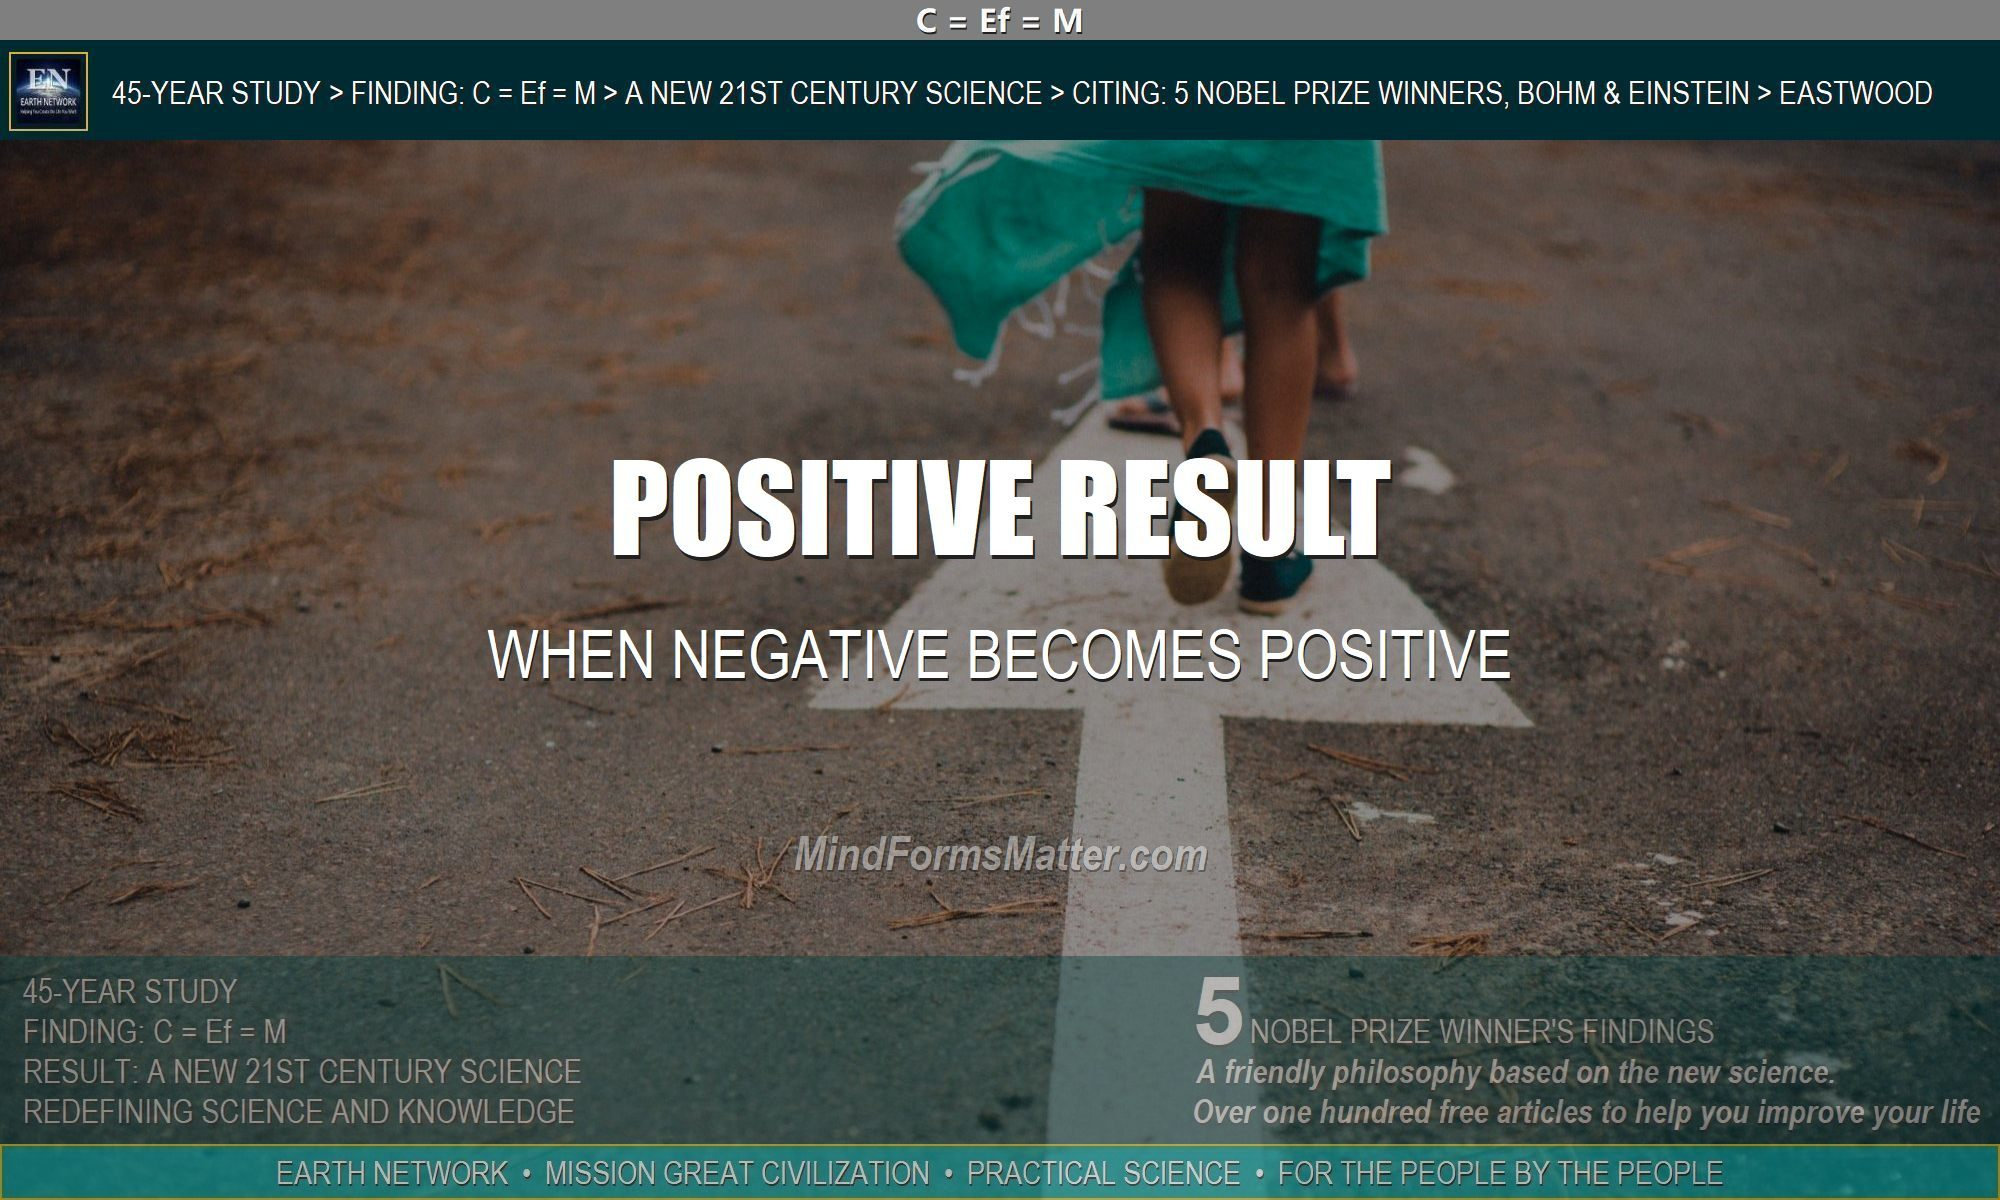 Person walking depicts how an event that is negative in the short-term can have a positive result in the long run.